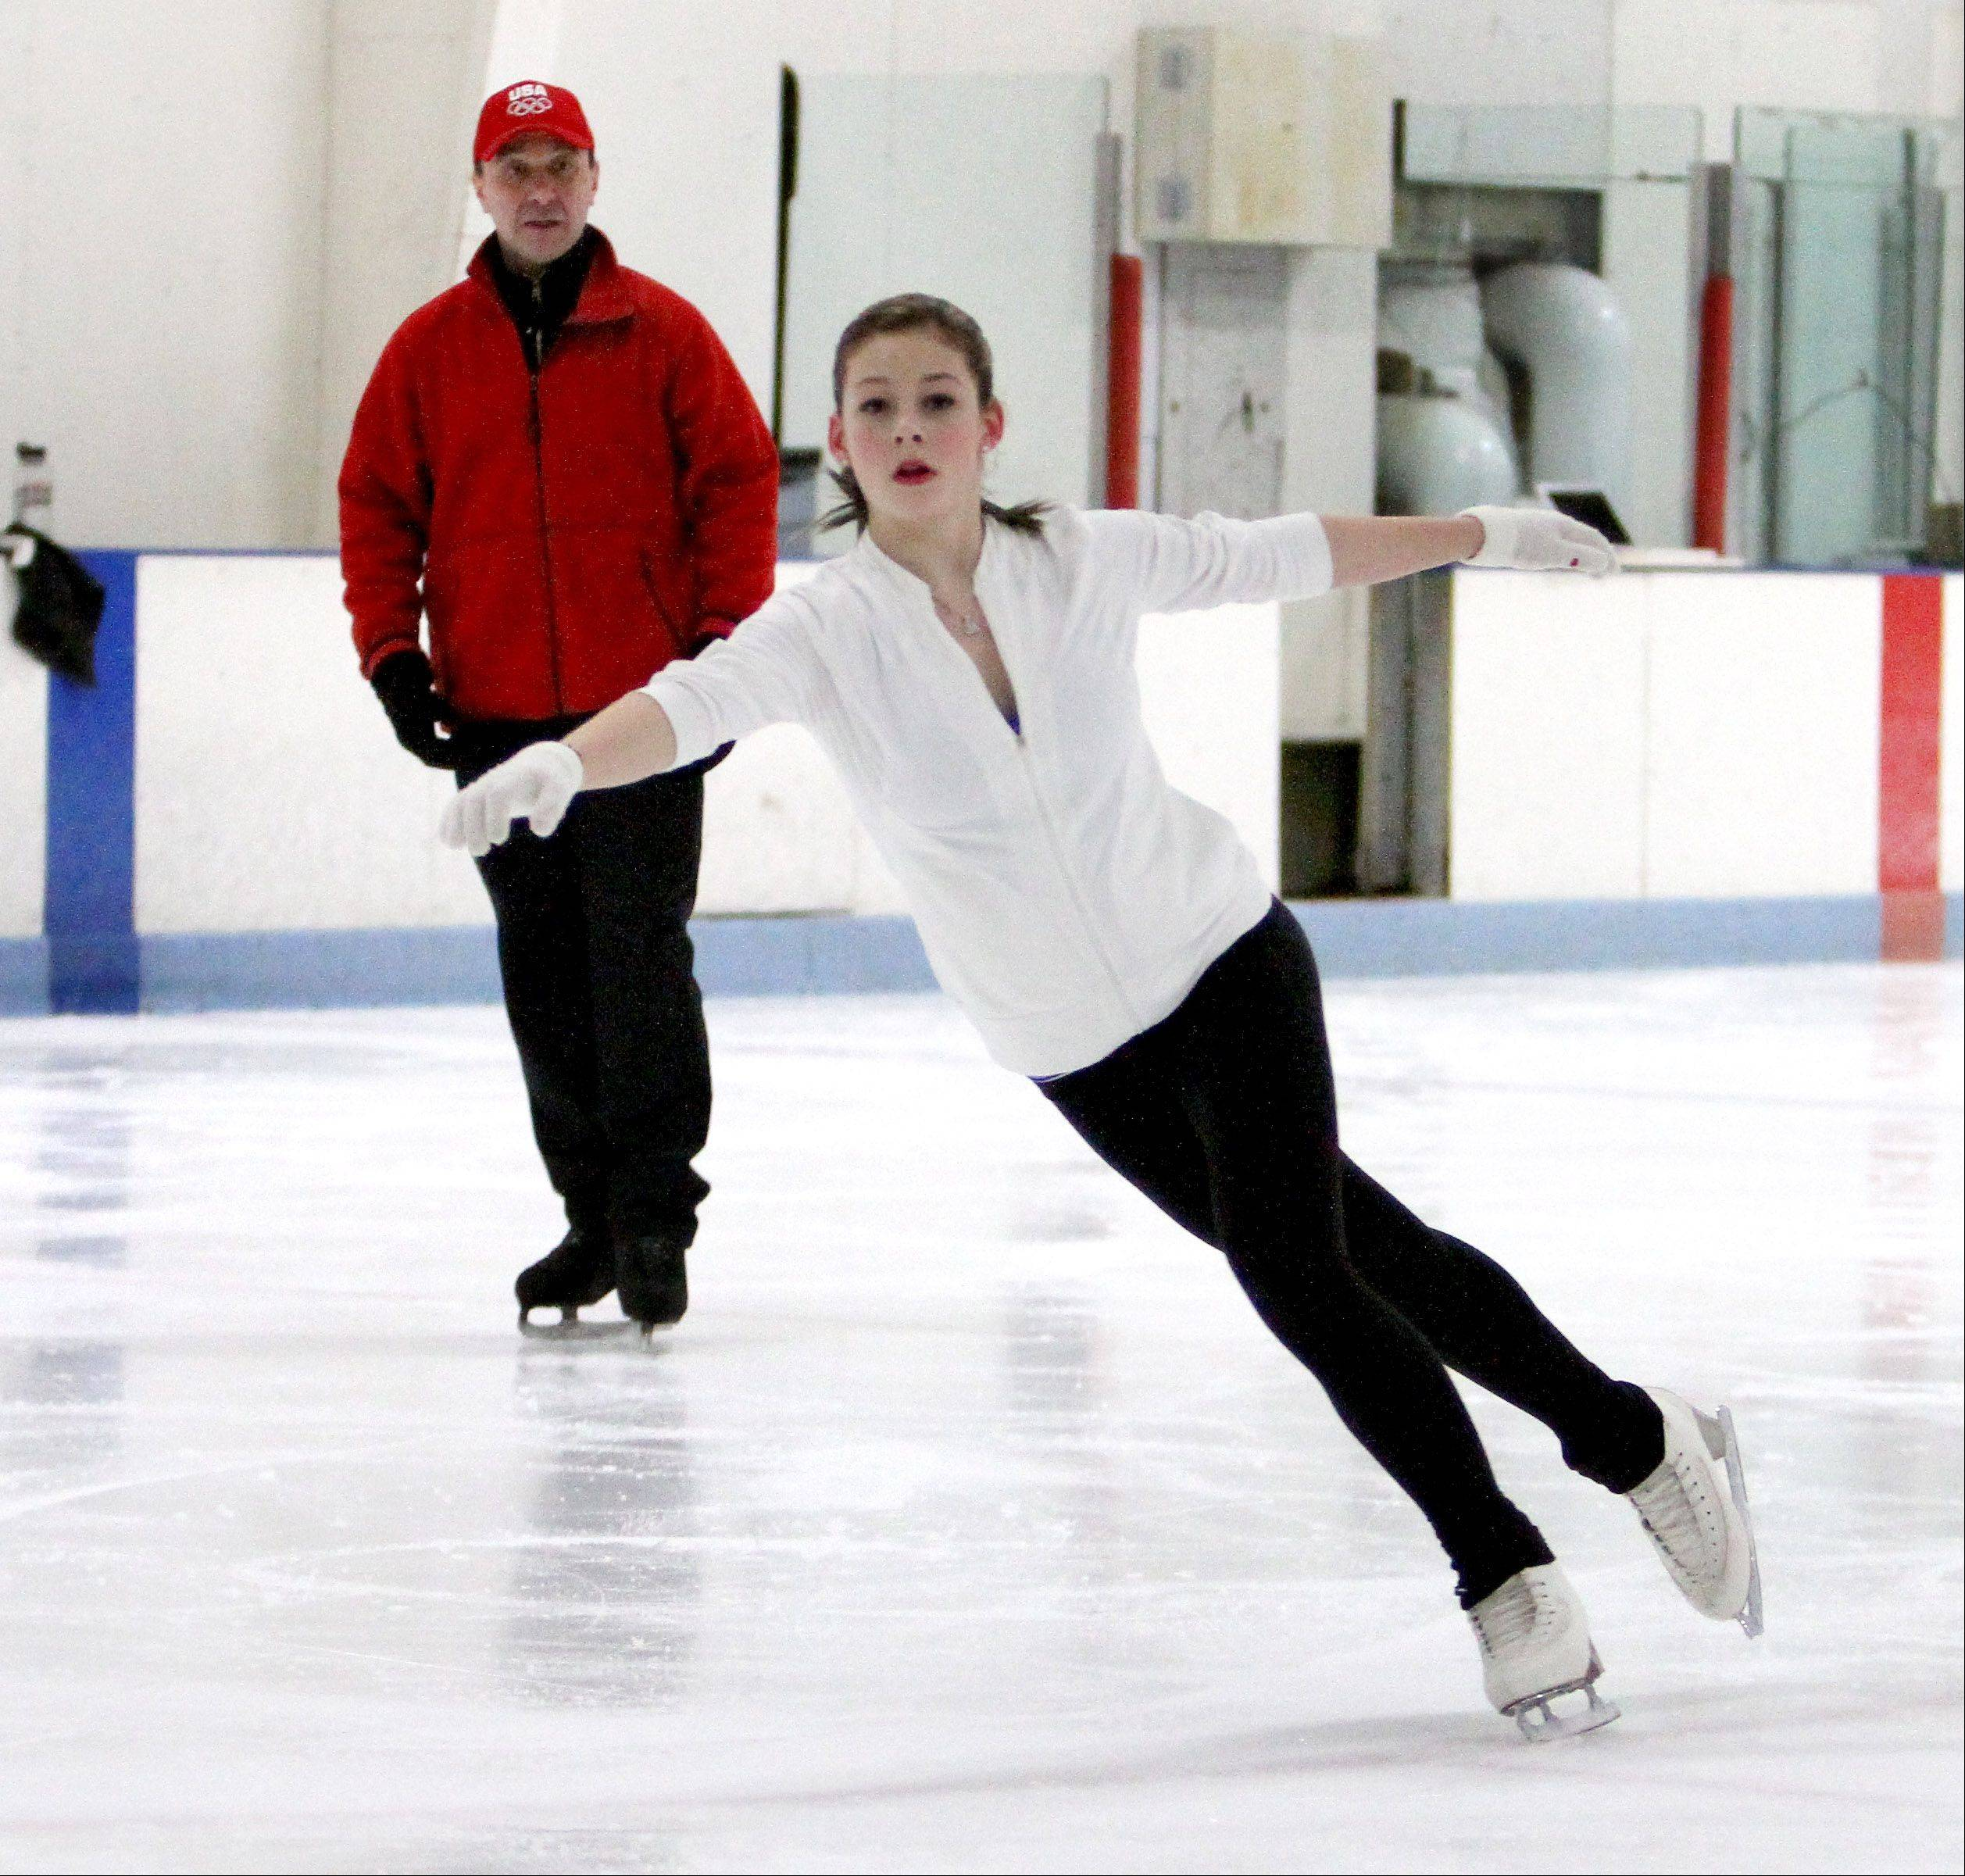 Gracie Gold trains at Center Ice of DuPage in Glen Ellyn in February 2012 as one of her coaches, Oleg Epstein, looks on.